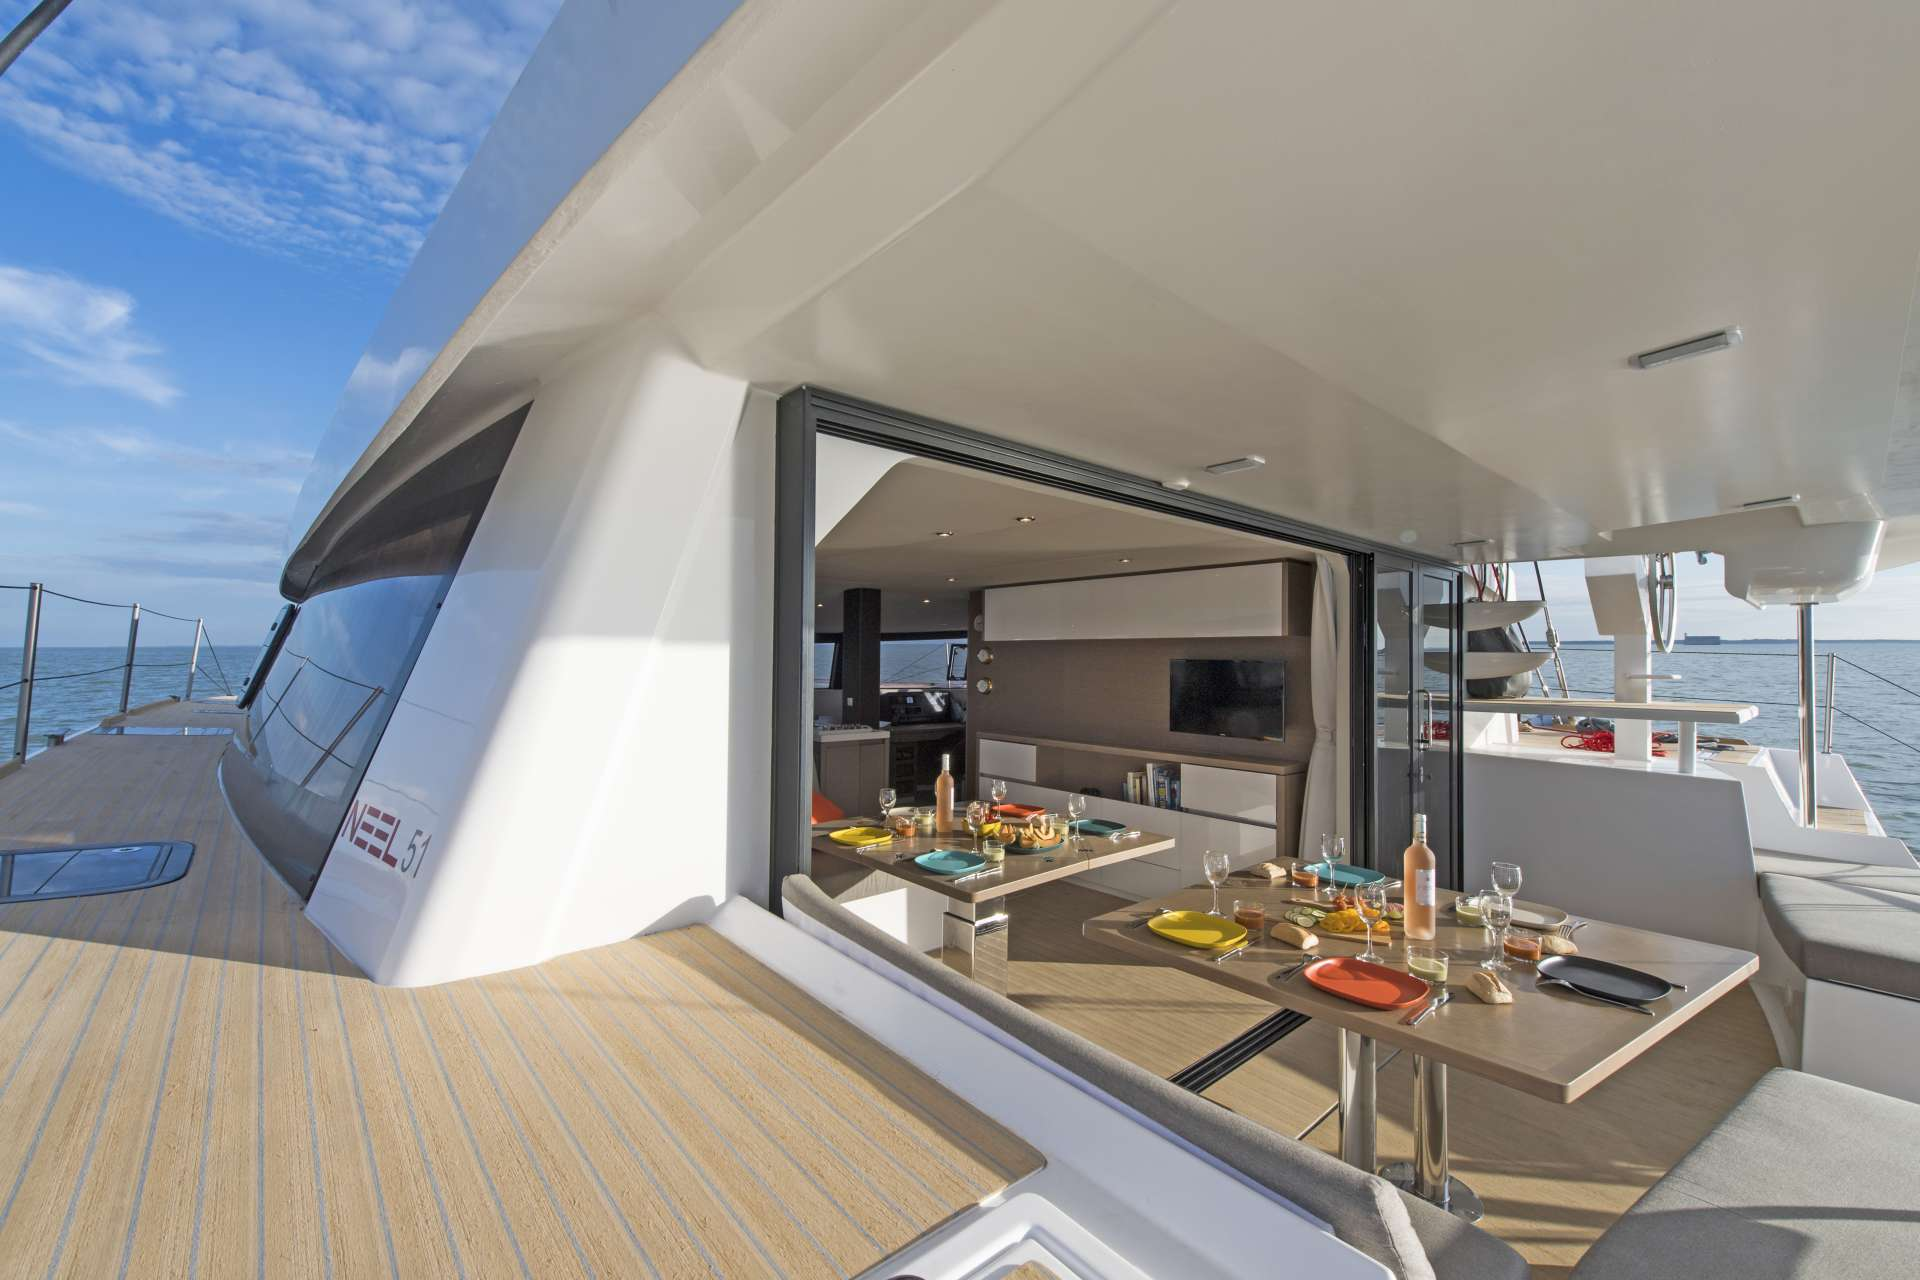 Fantastic Exterior Dining Experience